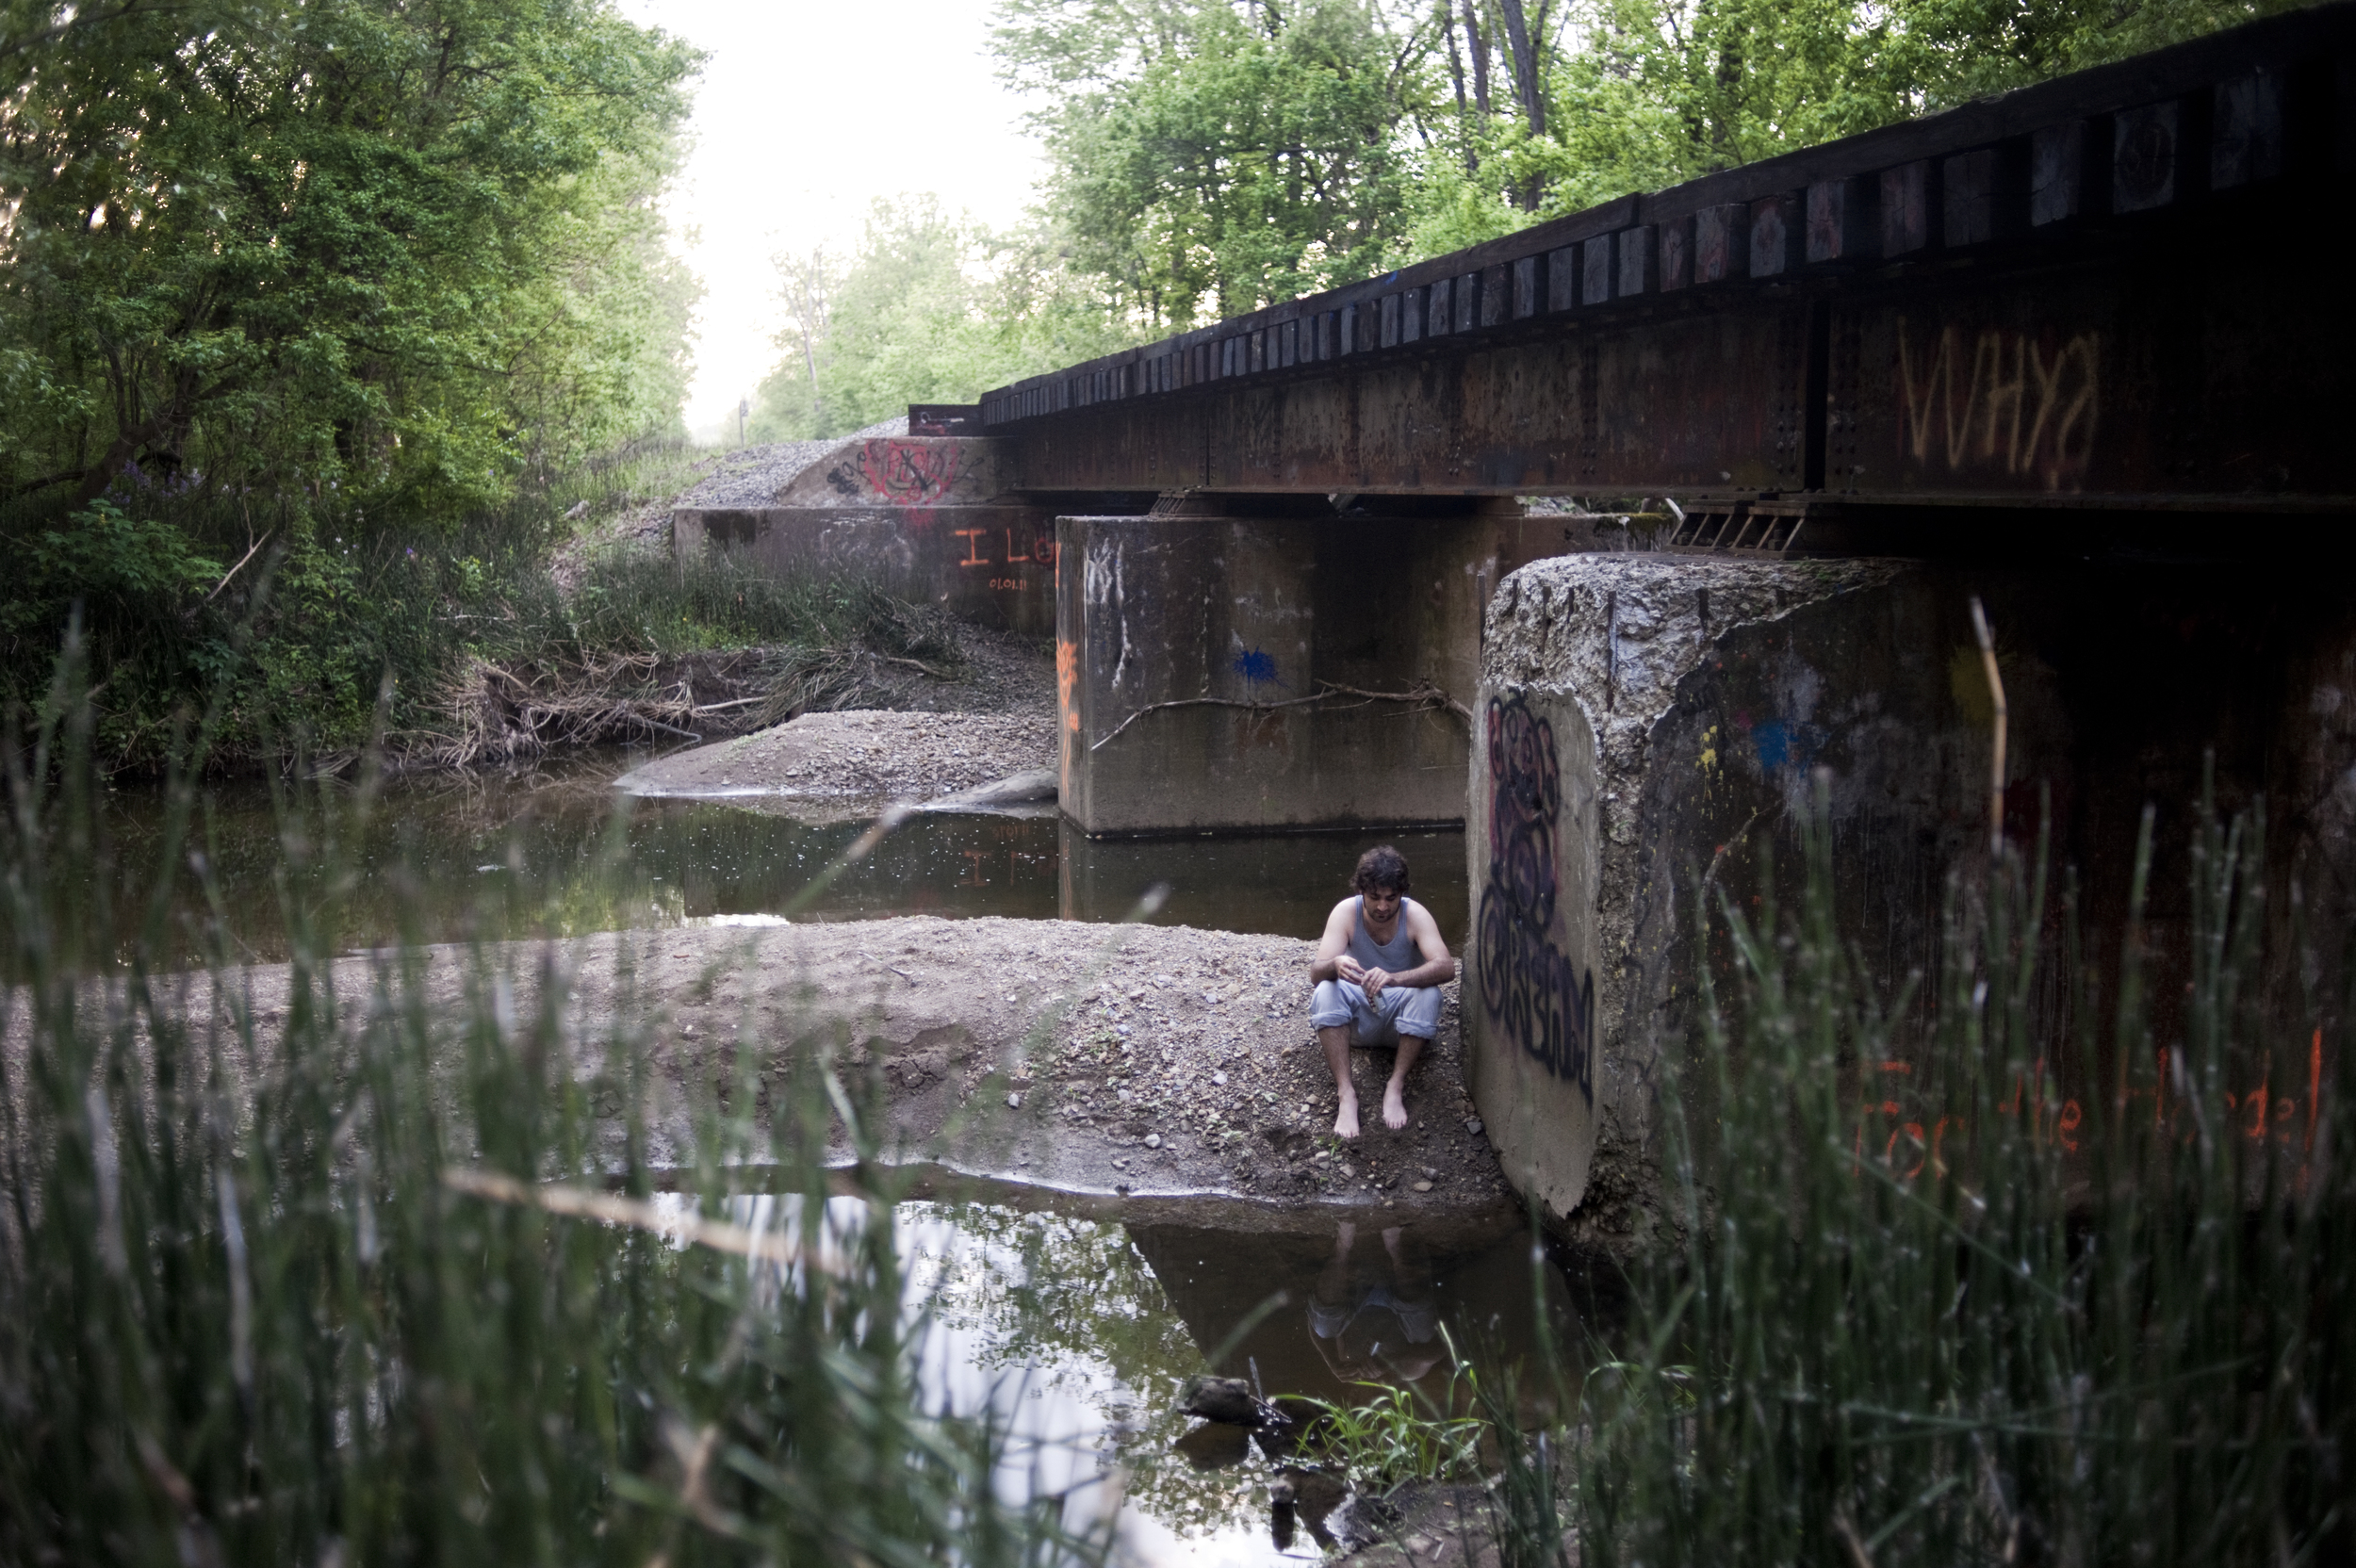 """""""I have my habits, and I have my problems, but as long as I'm alive I know that I'm alive for my family."""" Ryan sits by a bridge where he often collects his thoughts. """"Things are dark sometimes, so much so that you can't see any end to it, but if you keep going, there is a light."""""""